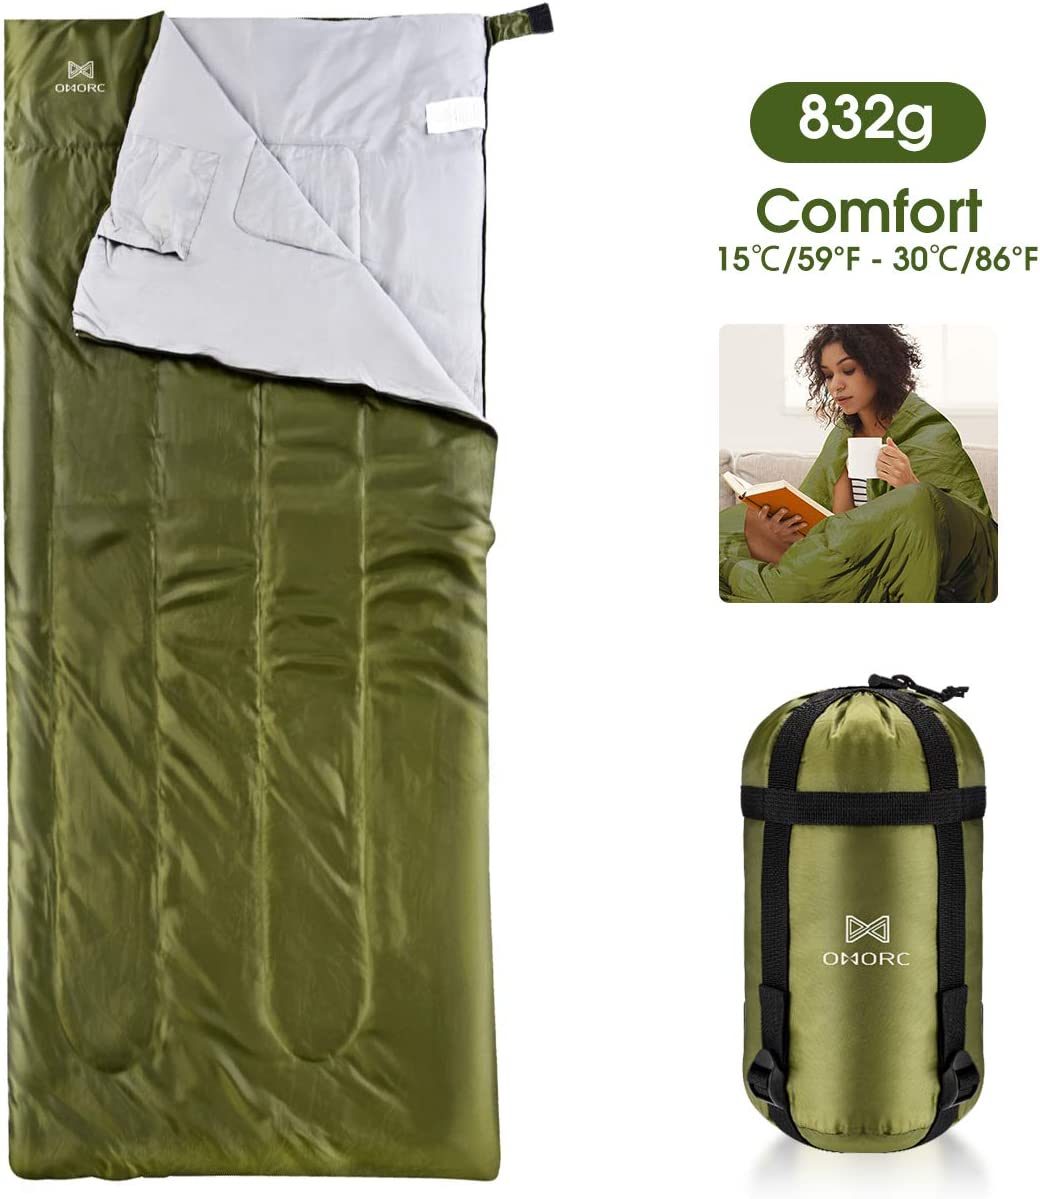 Camping Sleeping Bag – 3 Season Warm Cool Weather – Summer, Spring, Fall, Lightweight, Waterproof for Adults Kids – Camping Gear Equipment, Traveling, and Outdoors